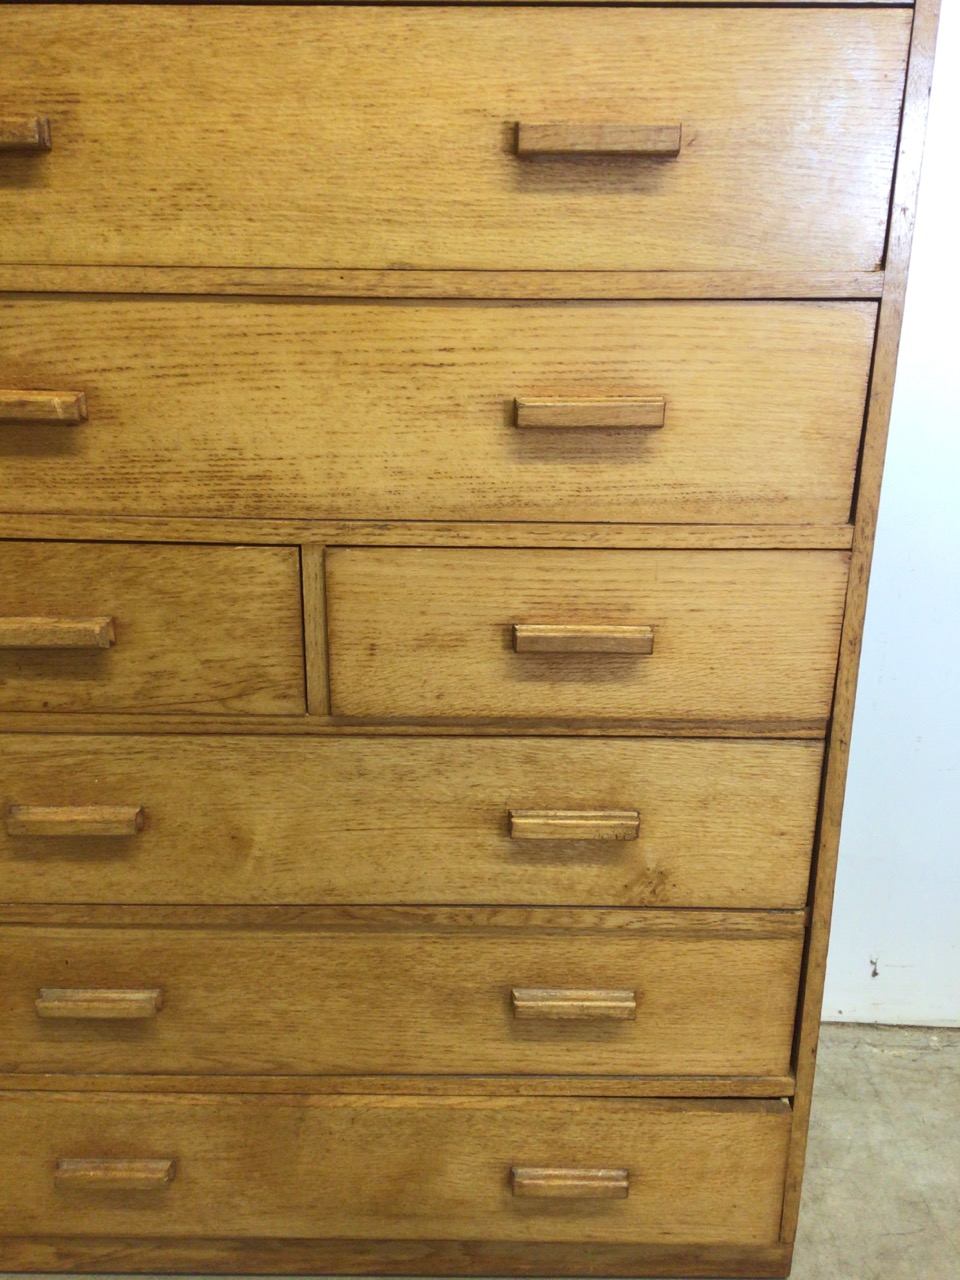 A mid century oak fronted ten drawer tall boy with original handles. W:91cm x D:41cm x H:158cm - Image 4 of 4